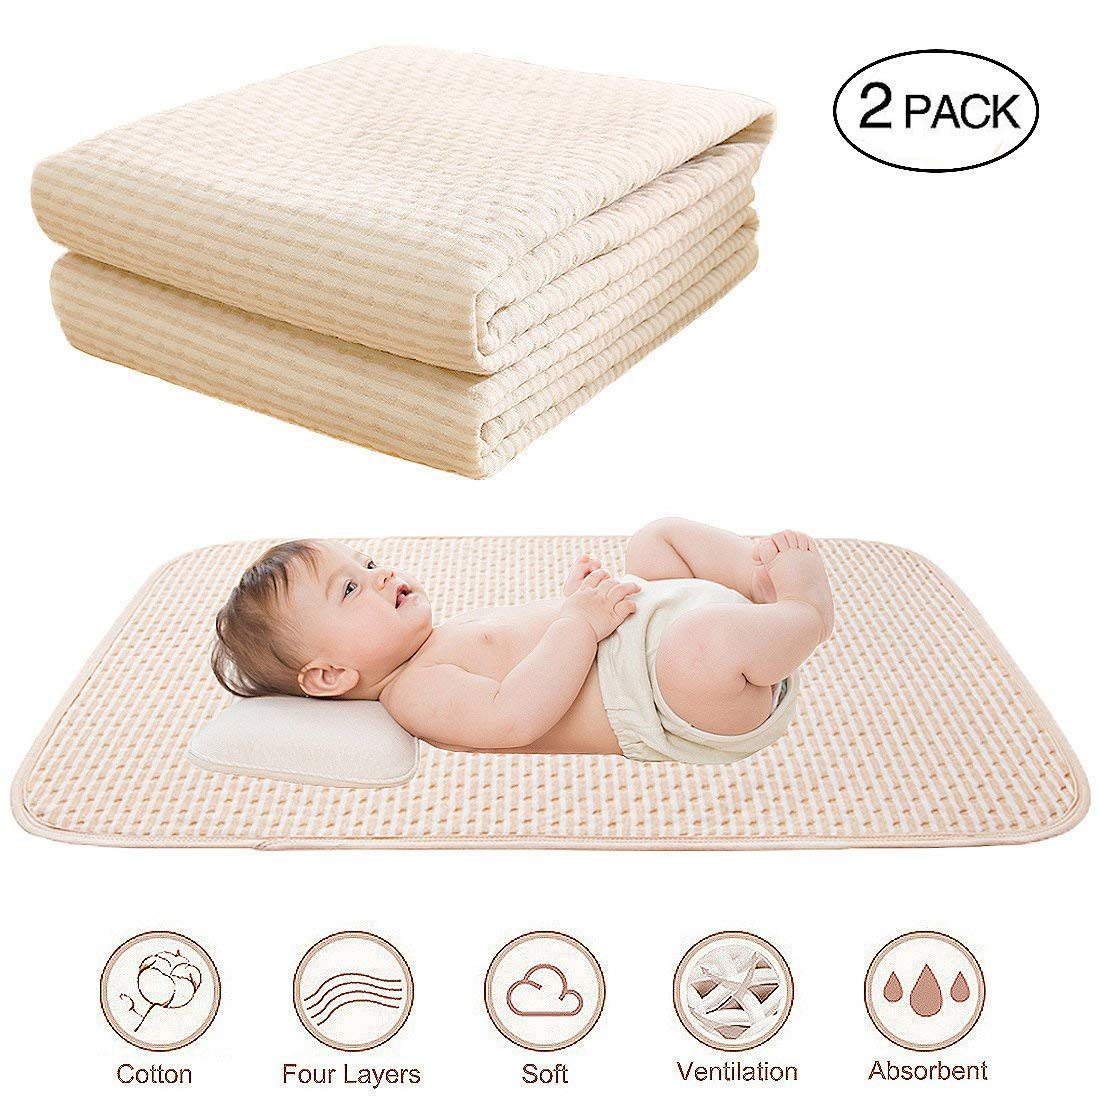 """Baby Waterproof Bed Pad Organic Cotton Mattress Protector Reusable Incontinence 4 Protective Layers Ultra Absorb Sheets for Infants Kids, Size 39.5""""x23.8"""" (2 Pack)"""